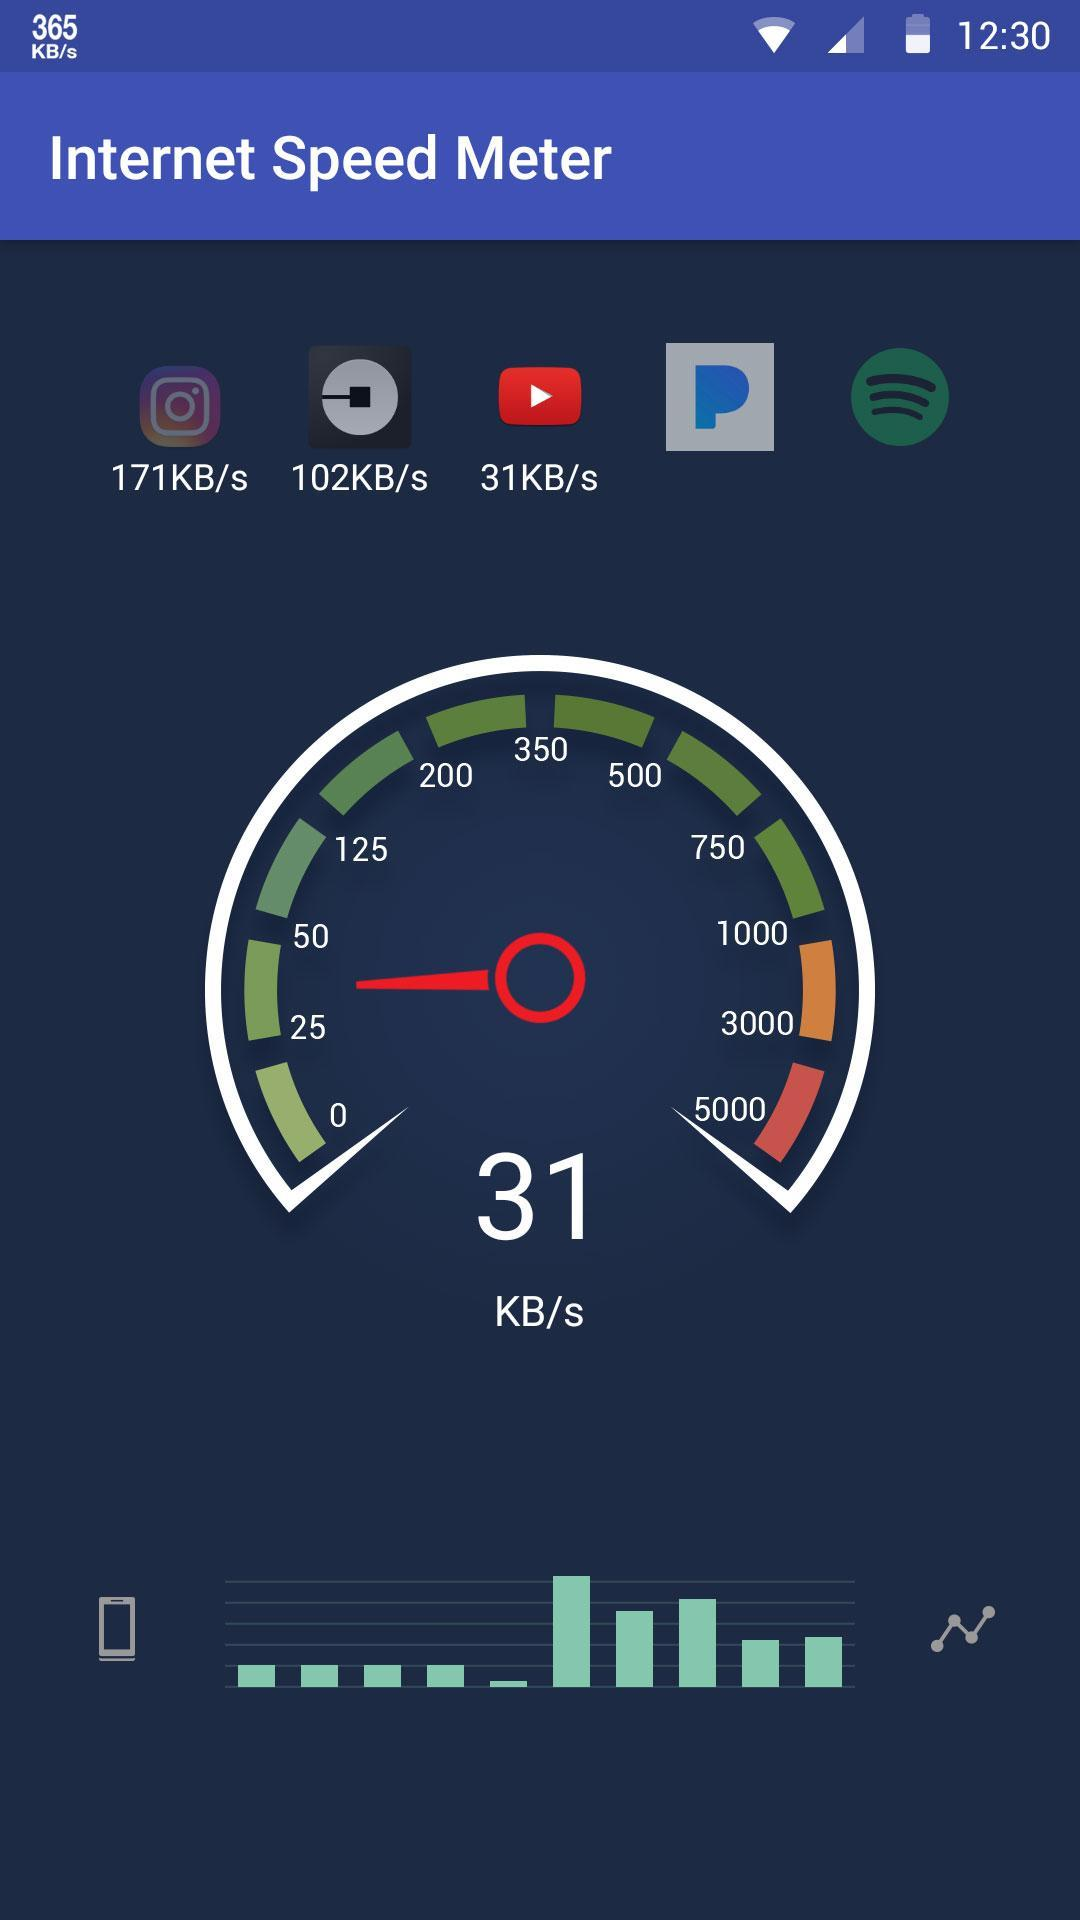 Internet Speed Meter for Android - APK Download